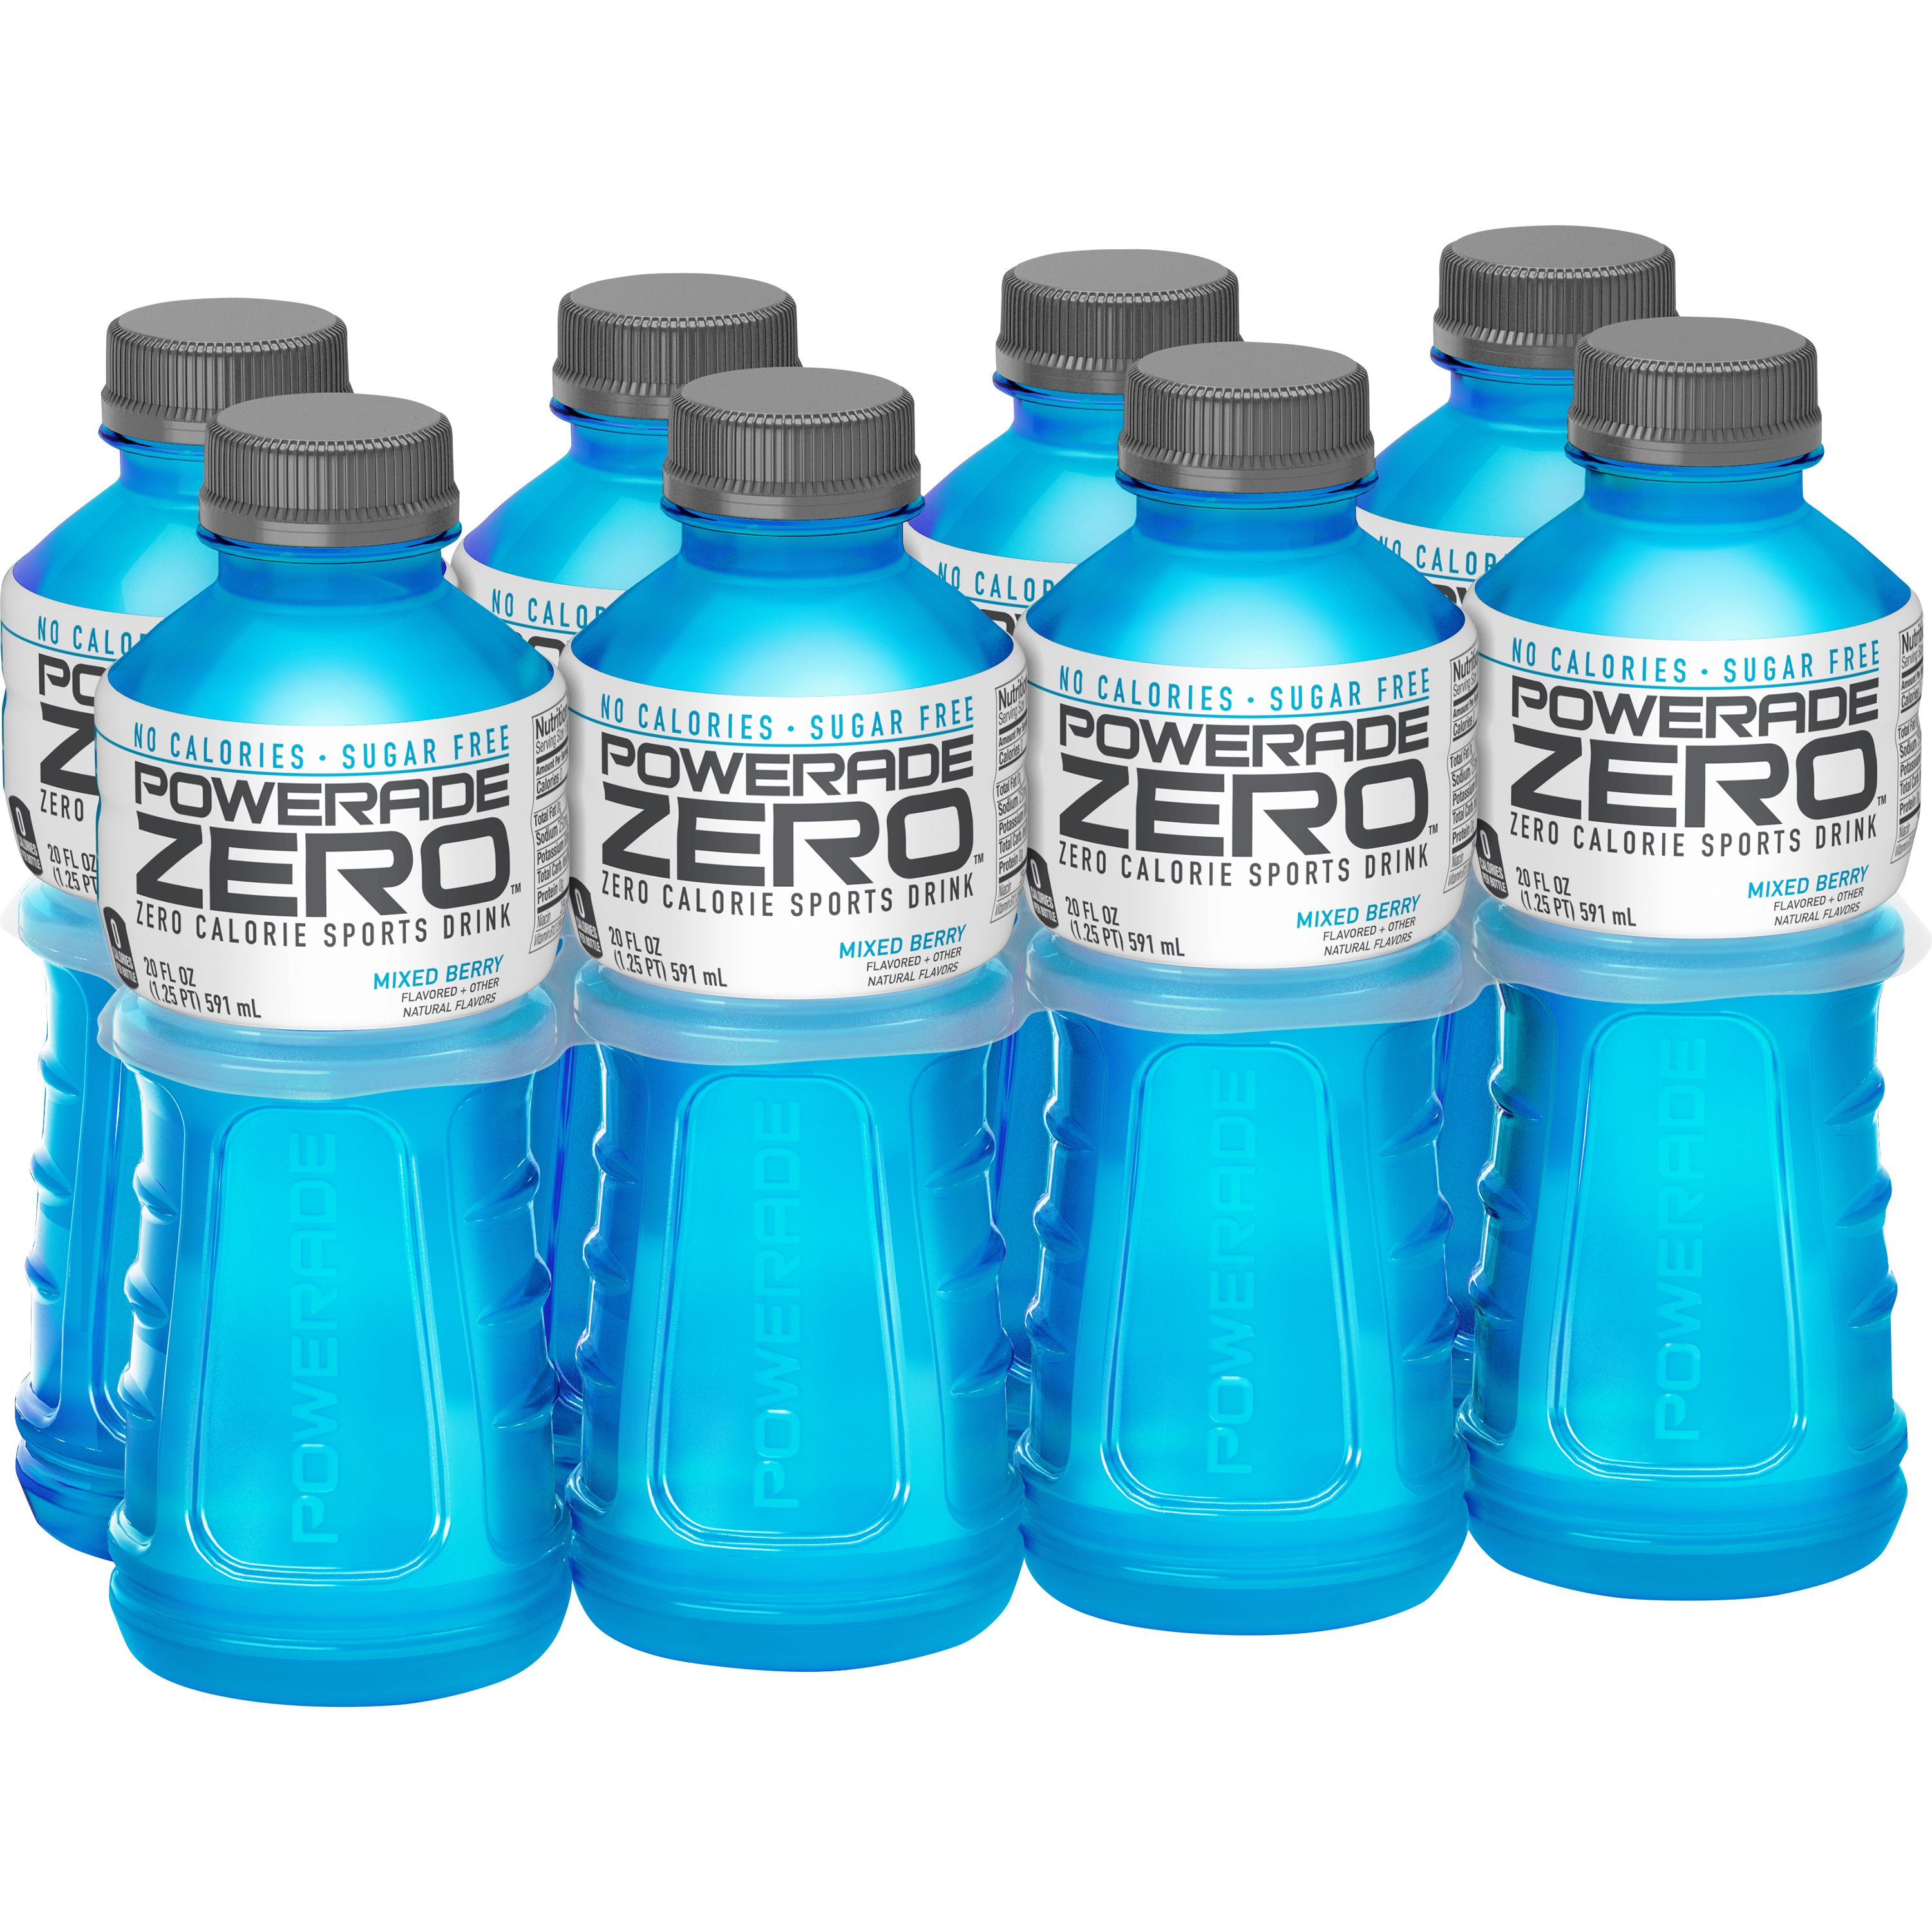 Powerade Sports Drink, Mixed Berry Zero, 20 Fl Oz, 8 Count